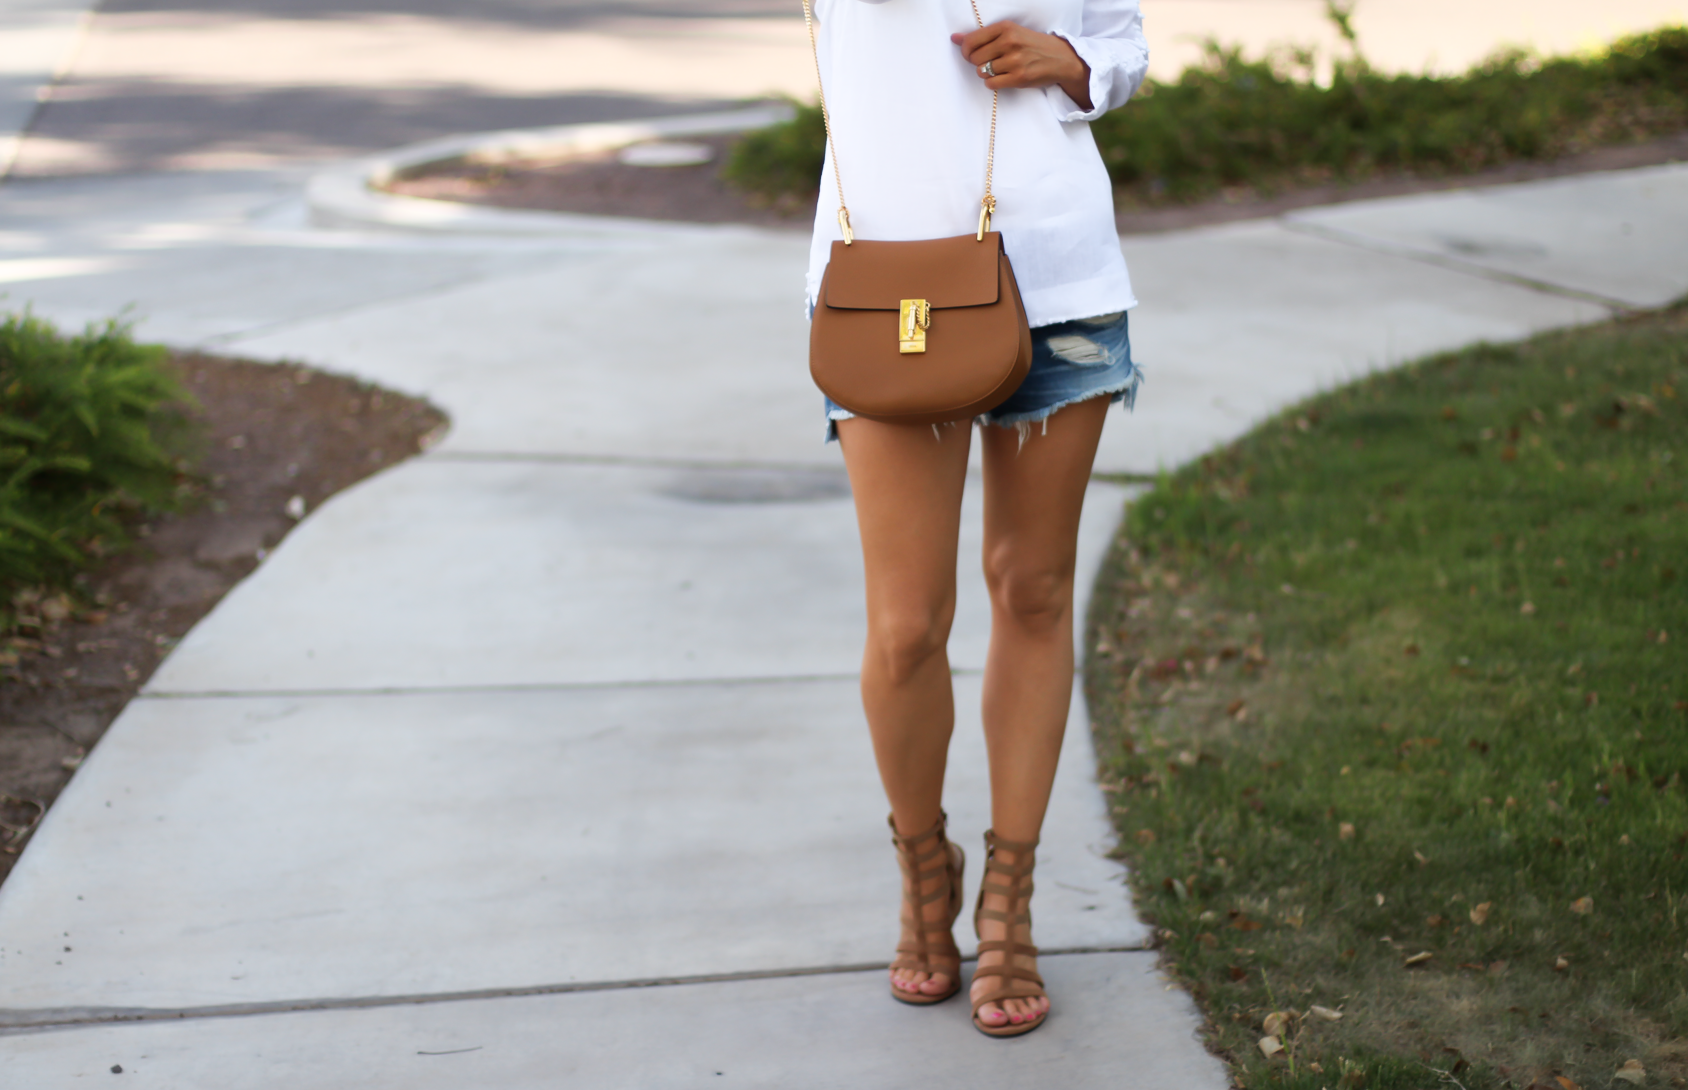 Denim Cutoff Jean Shorts, White Linen Blouse, Gladiator Wedge Sandals, Chain Strap Leather Crossbody Bag, Rag and Bone, J.Crew, Stuart Weitzman, Chloe 7